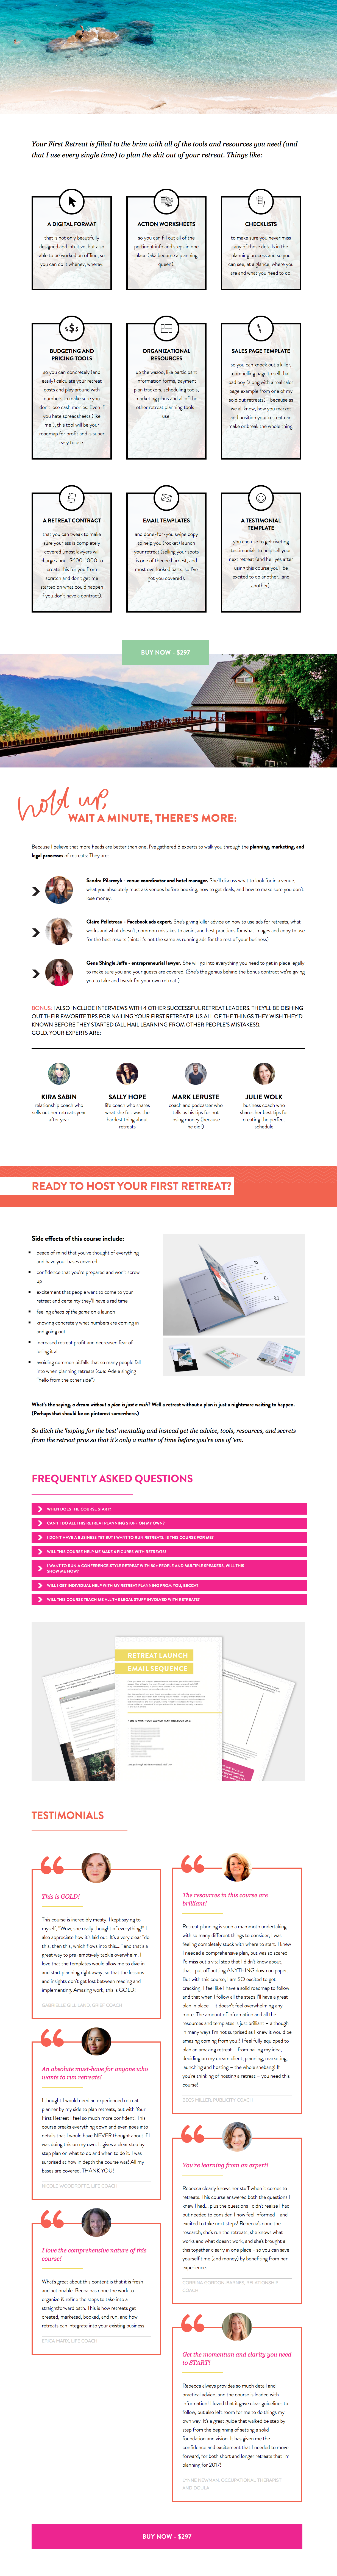 Your First Retreat Sales Page Design - Uncage your business - The Uncaged Life - Identity Division Agency